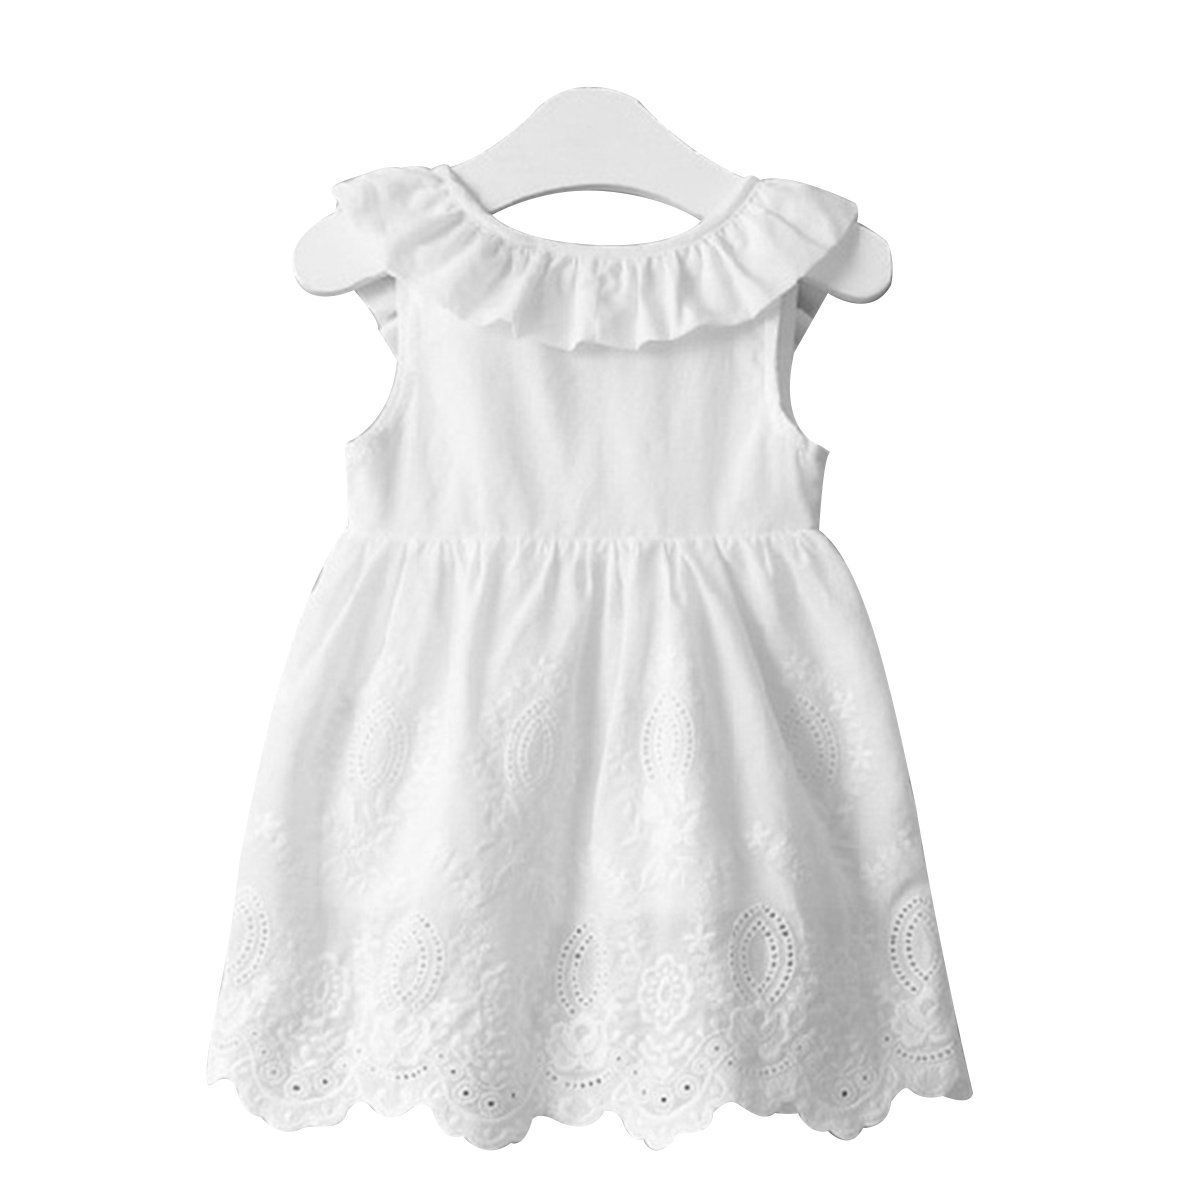 Baby kids girl bowknot lace floral dress party formal bridesmaid